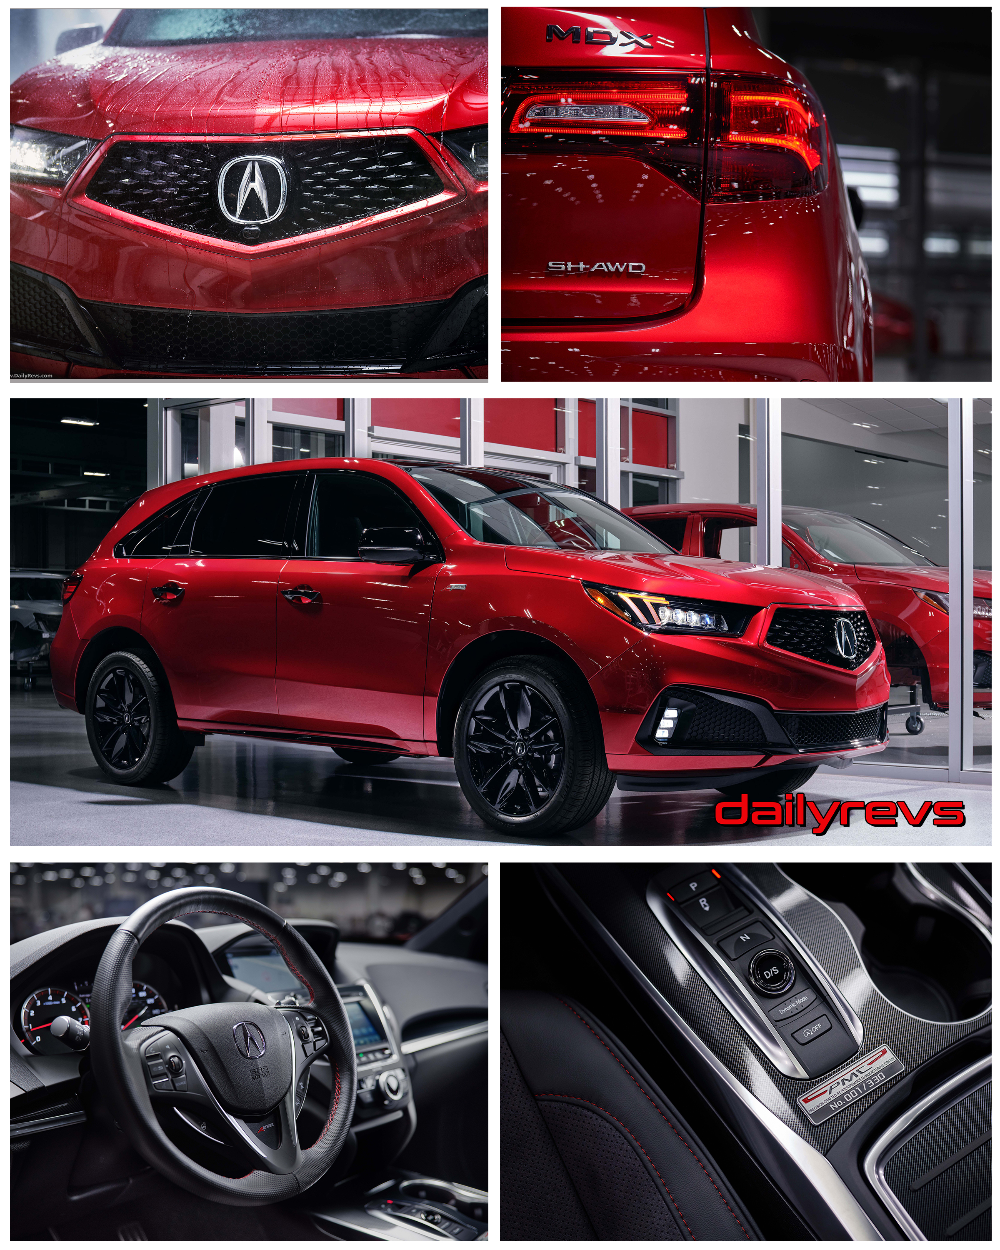 2020 Acura Mdx Pmc Edition Hd Pictures Videos Specs Informations Dailyrevs Acura Mdx Acura Mdx Accessories Acura